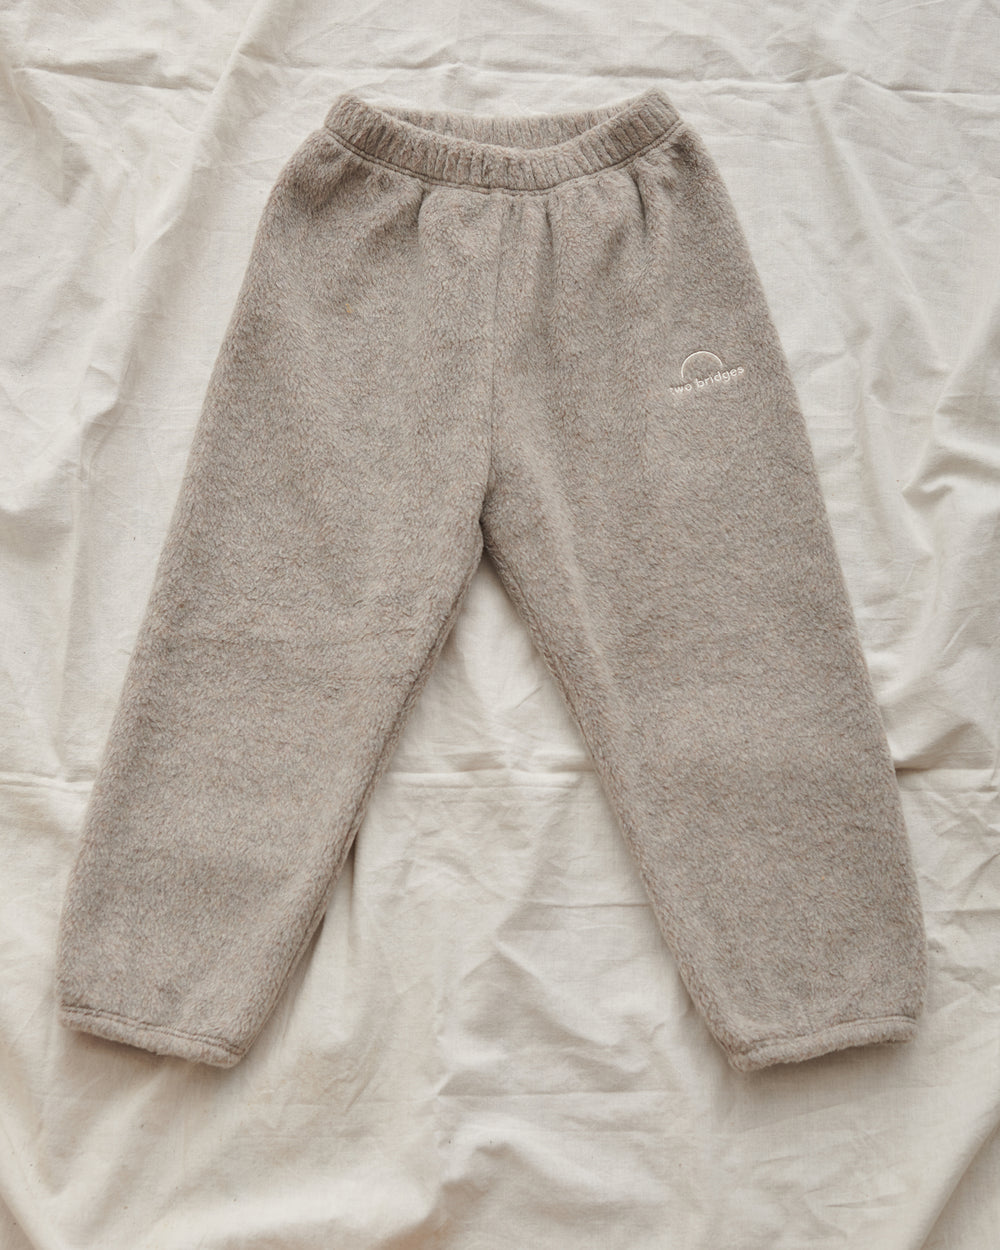 Cambie Sweatpants in Gray Melange